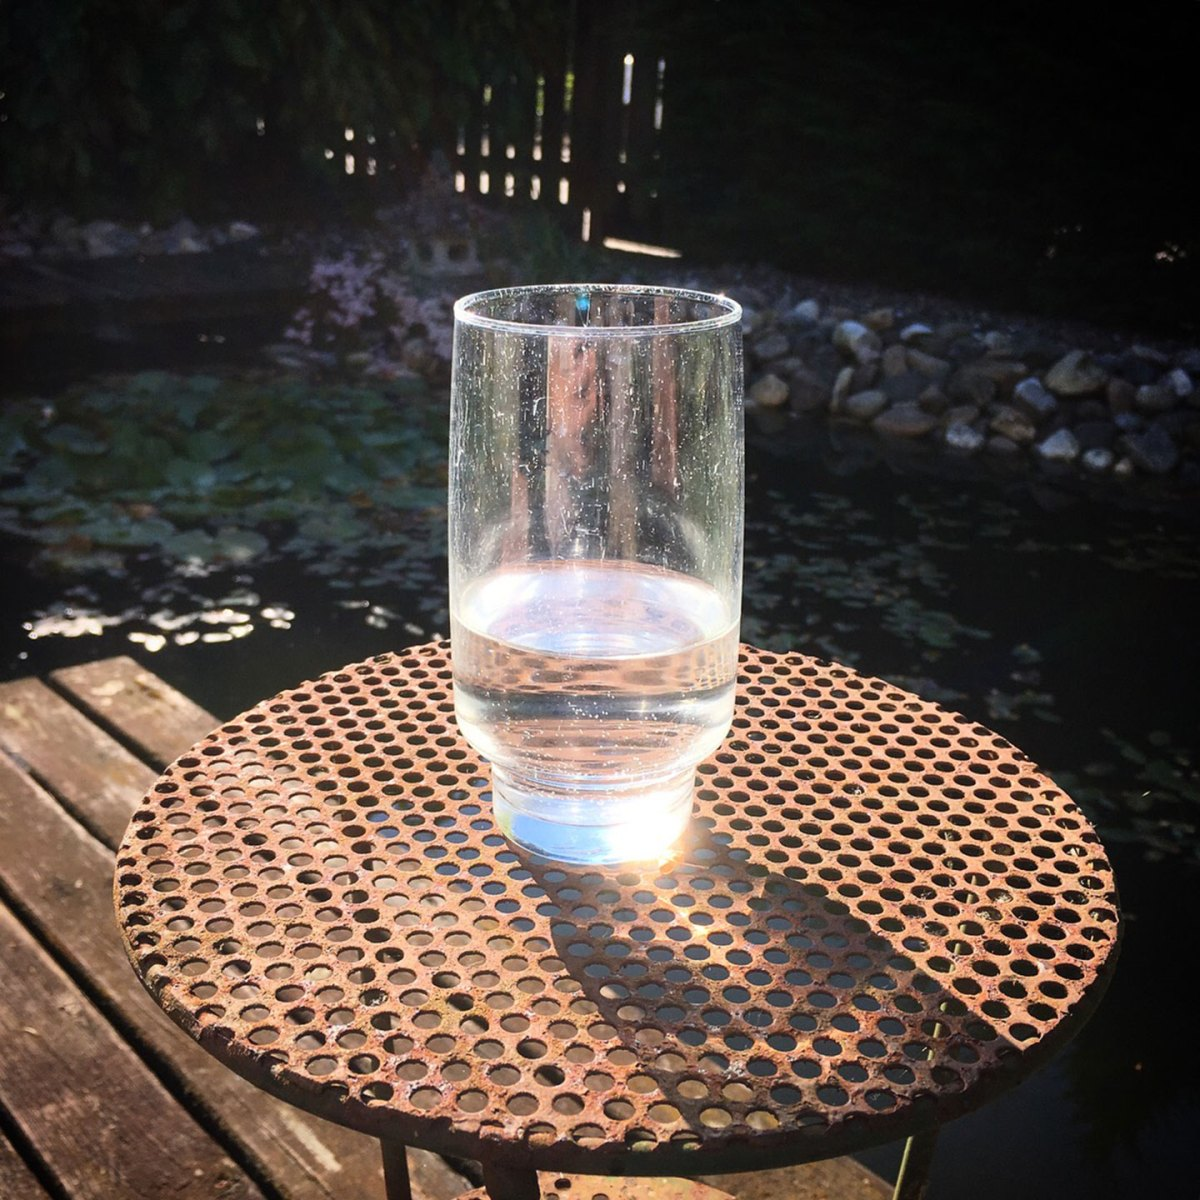 29/06/2018 Water